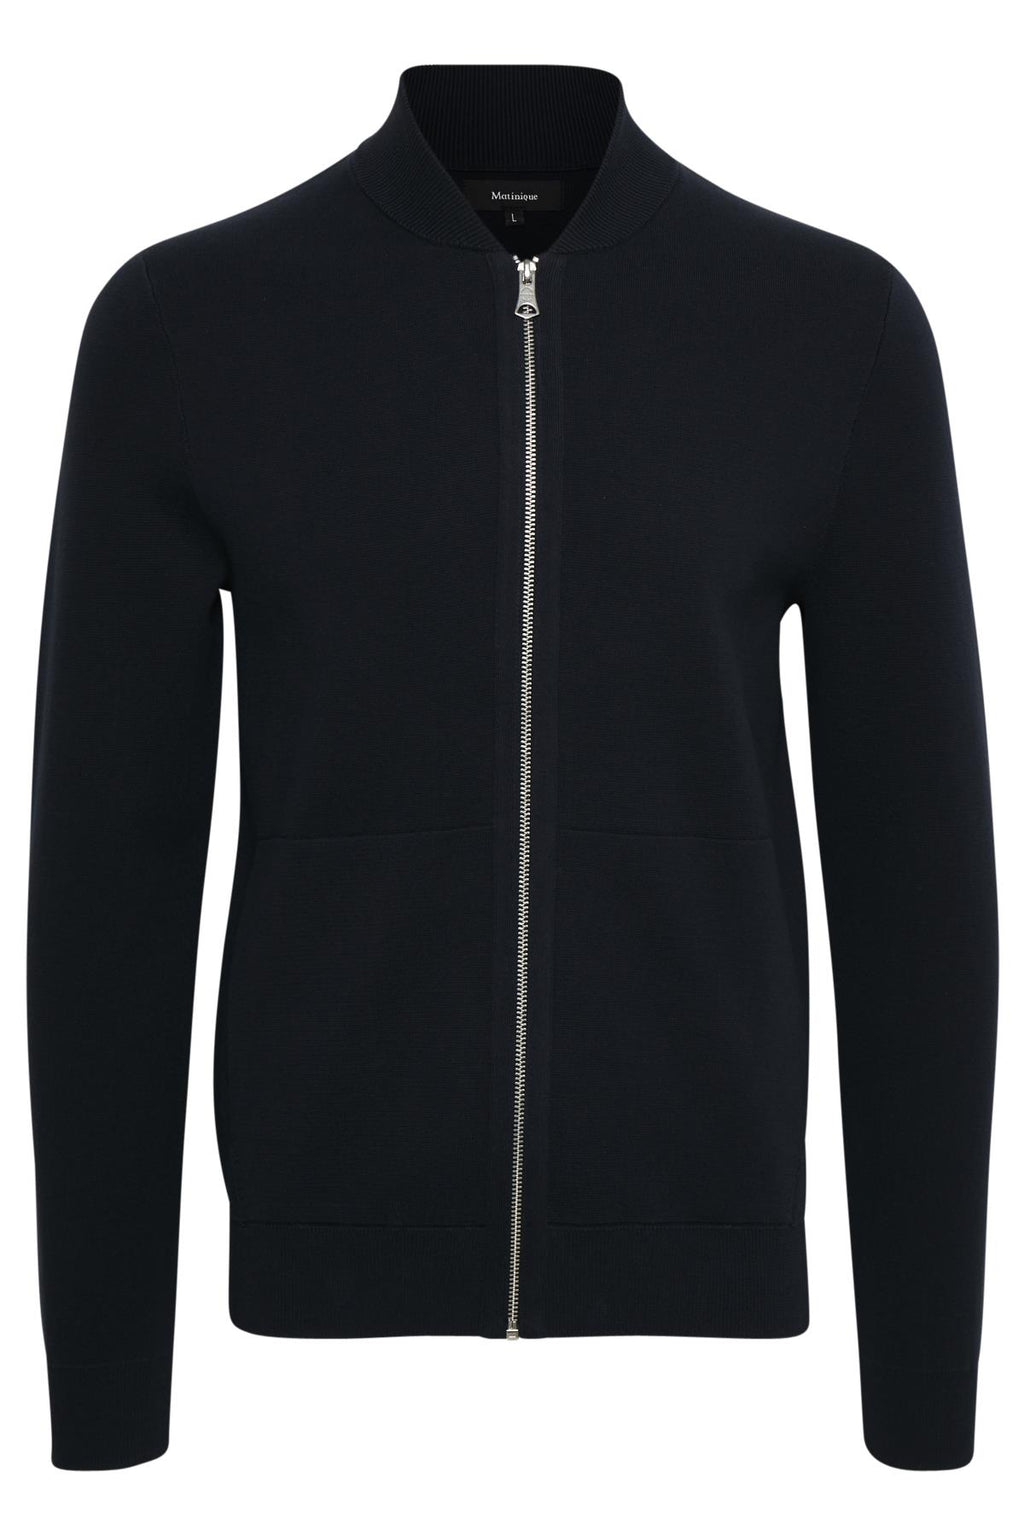 Matinique Sweater - Sport Cotton Milano